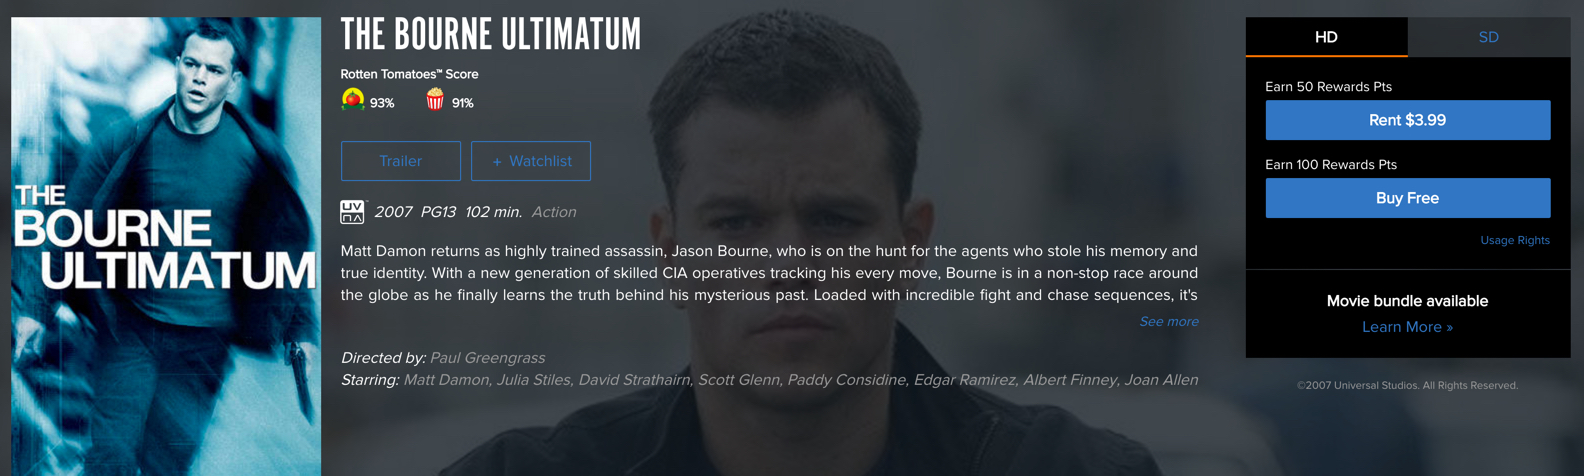 bourne ultimatum free